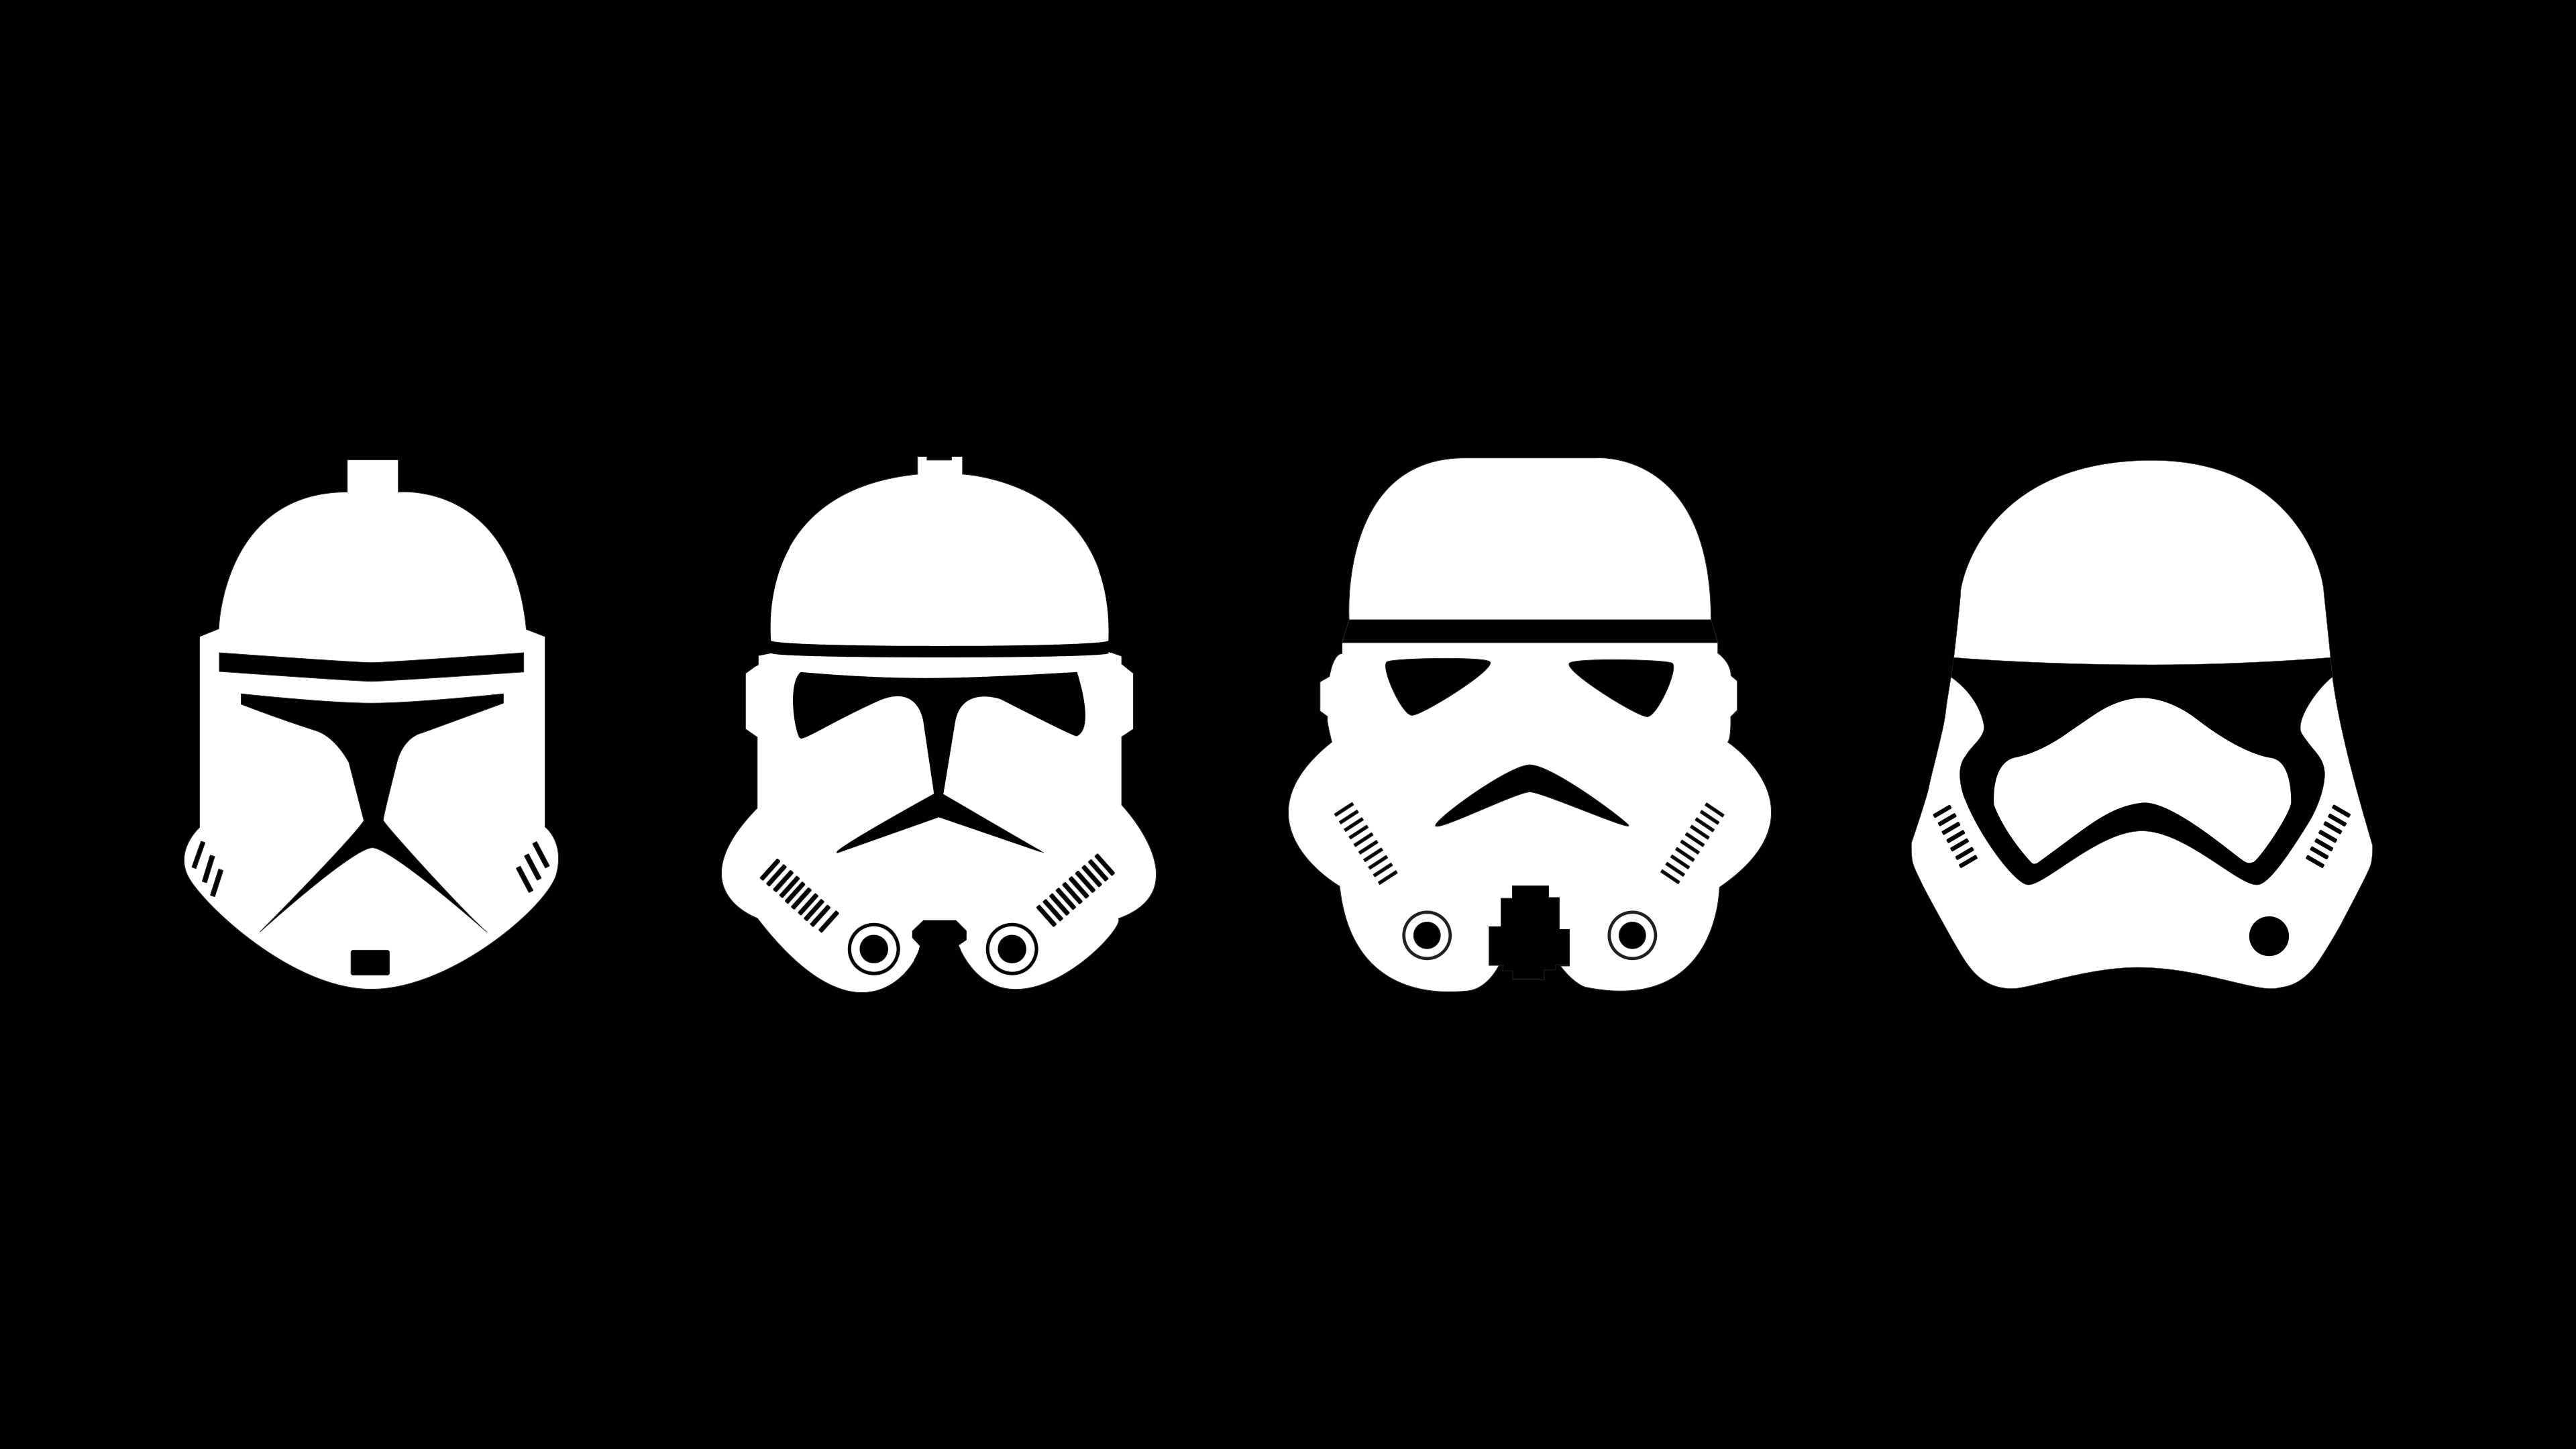 Mobile Star Wars Pictures› 100% Quality HD GuoGuiyan